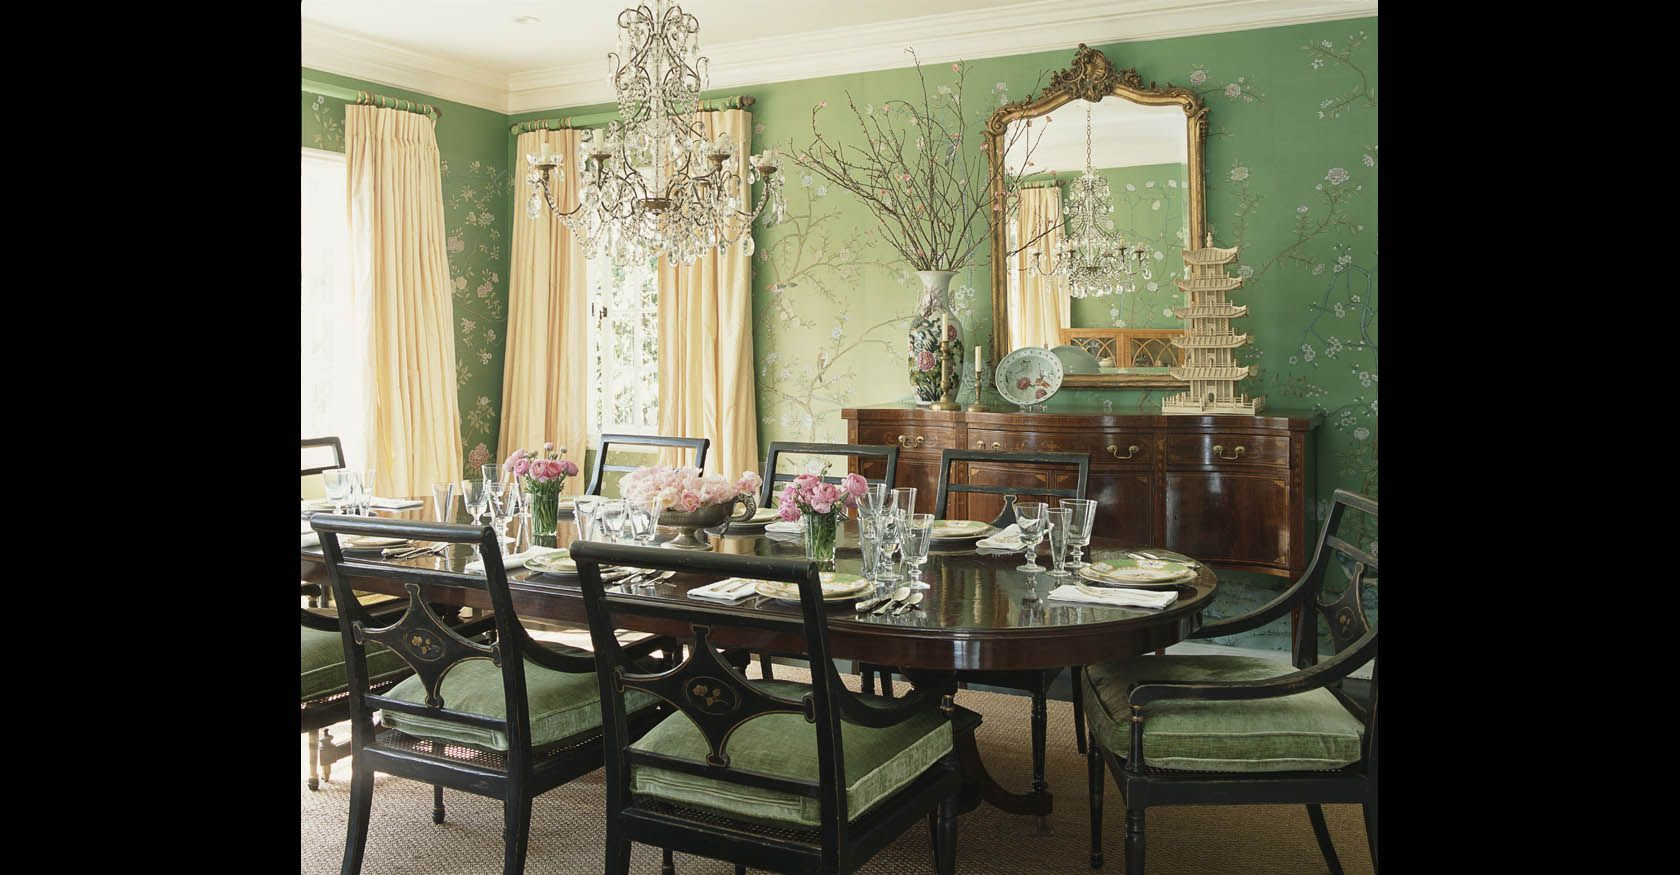 The Green Room Interiors Chattanooga TN Interior Decorator Designer